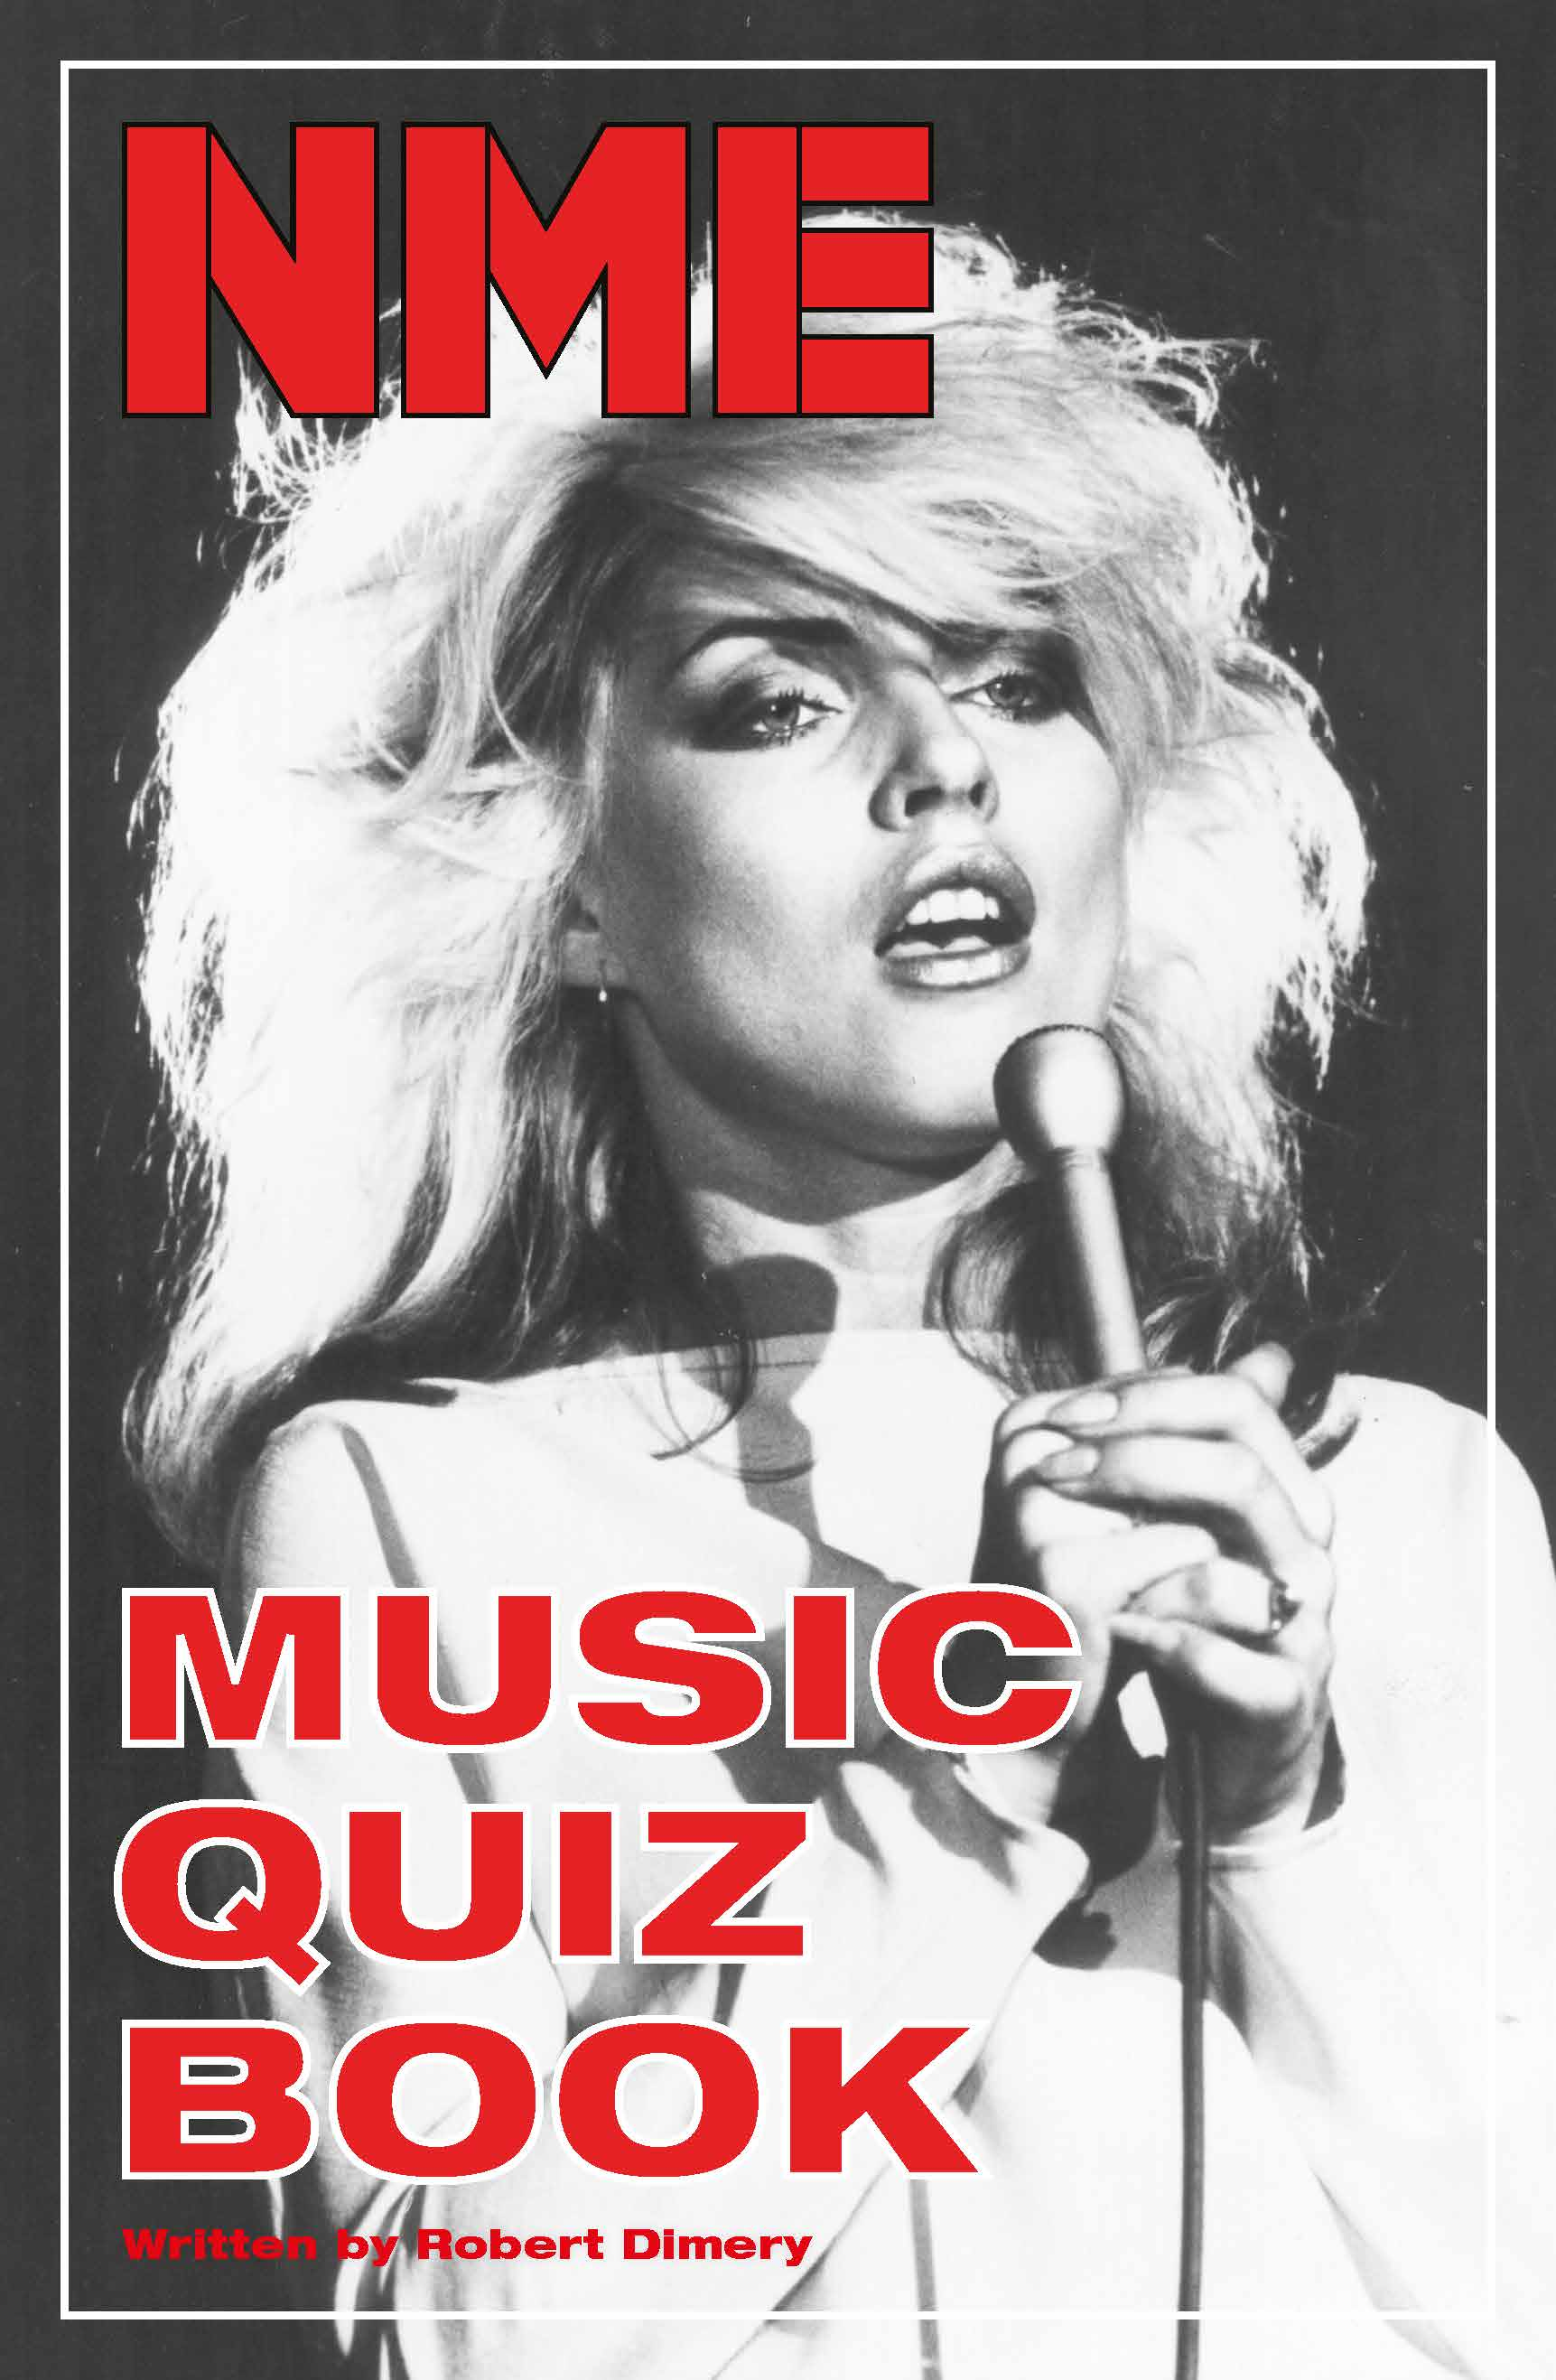 The NME Music Quiz Book - Product Thumbnail